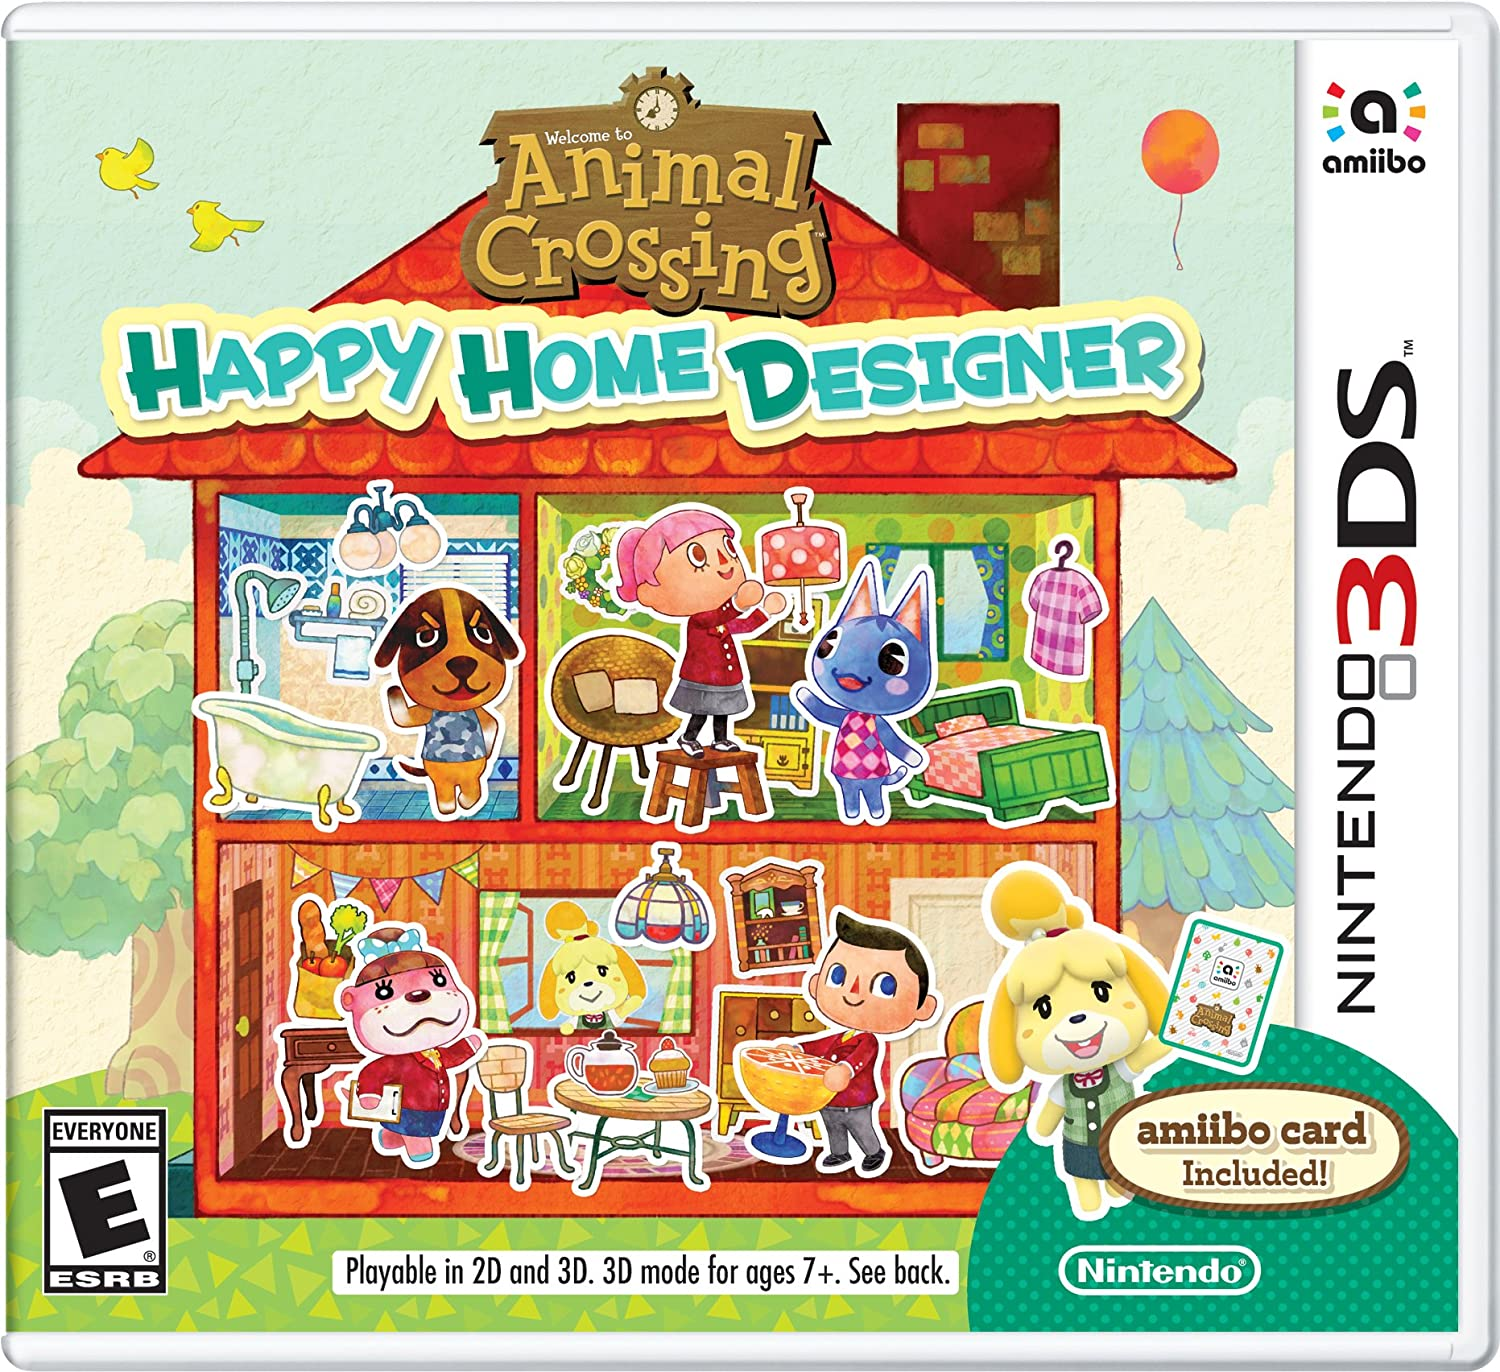 Amazon.com: Animal Crossing: Happy Home Designer - 3DS: Nintendo ...